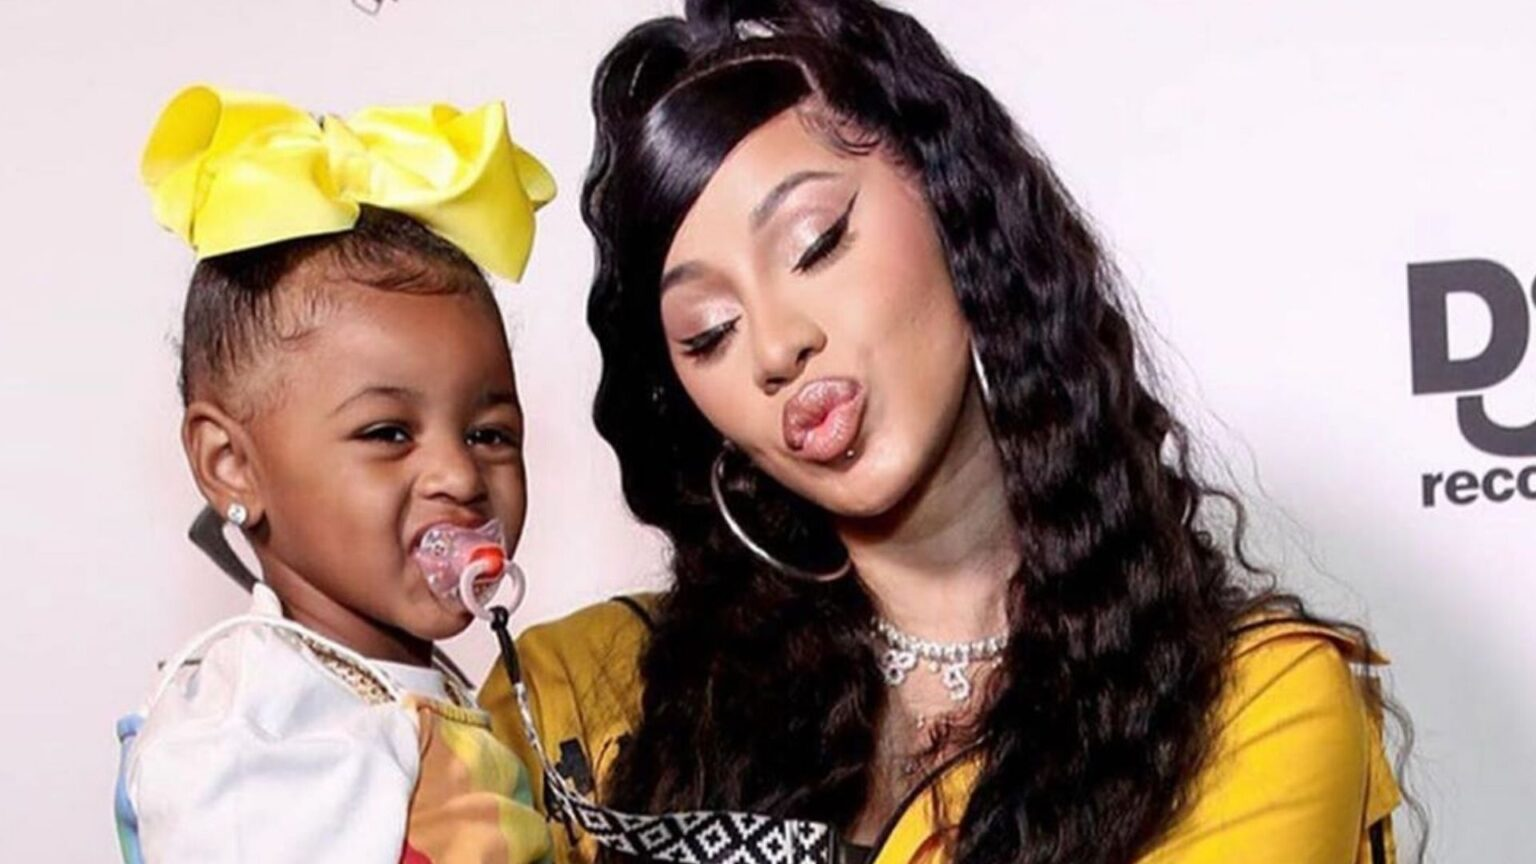 Cardi B Reacts After Being Called Out For Stopping Her Daughter From Listening to Her Music, WAP